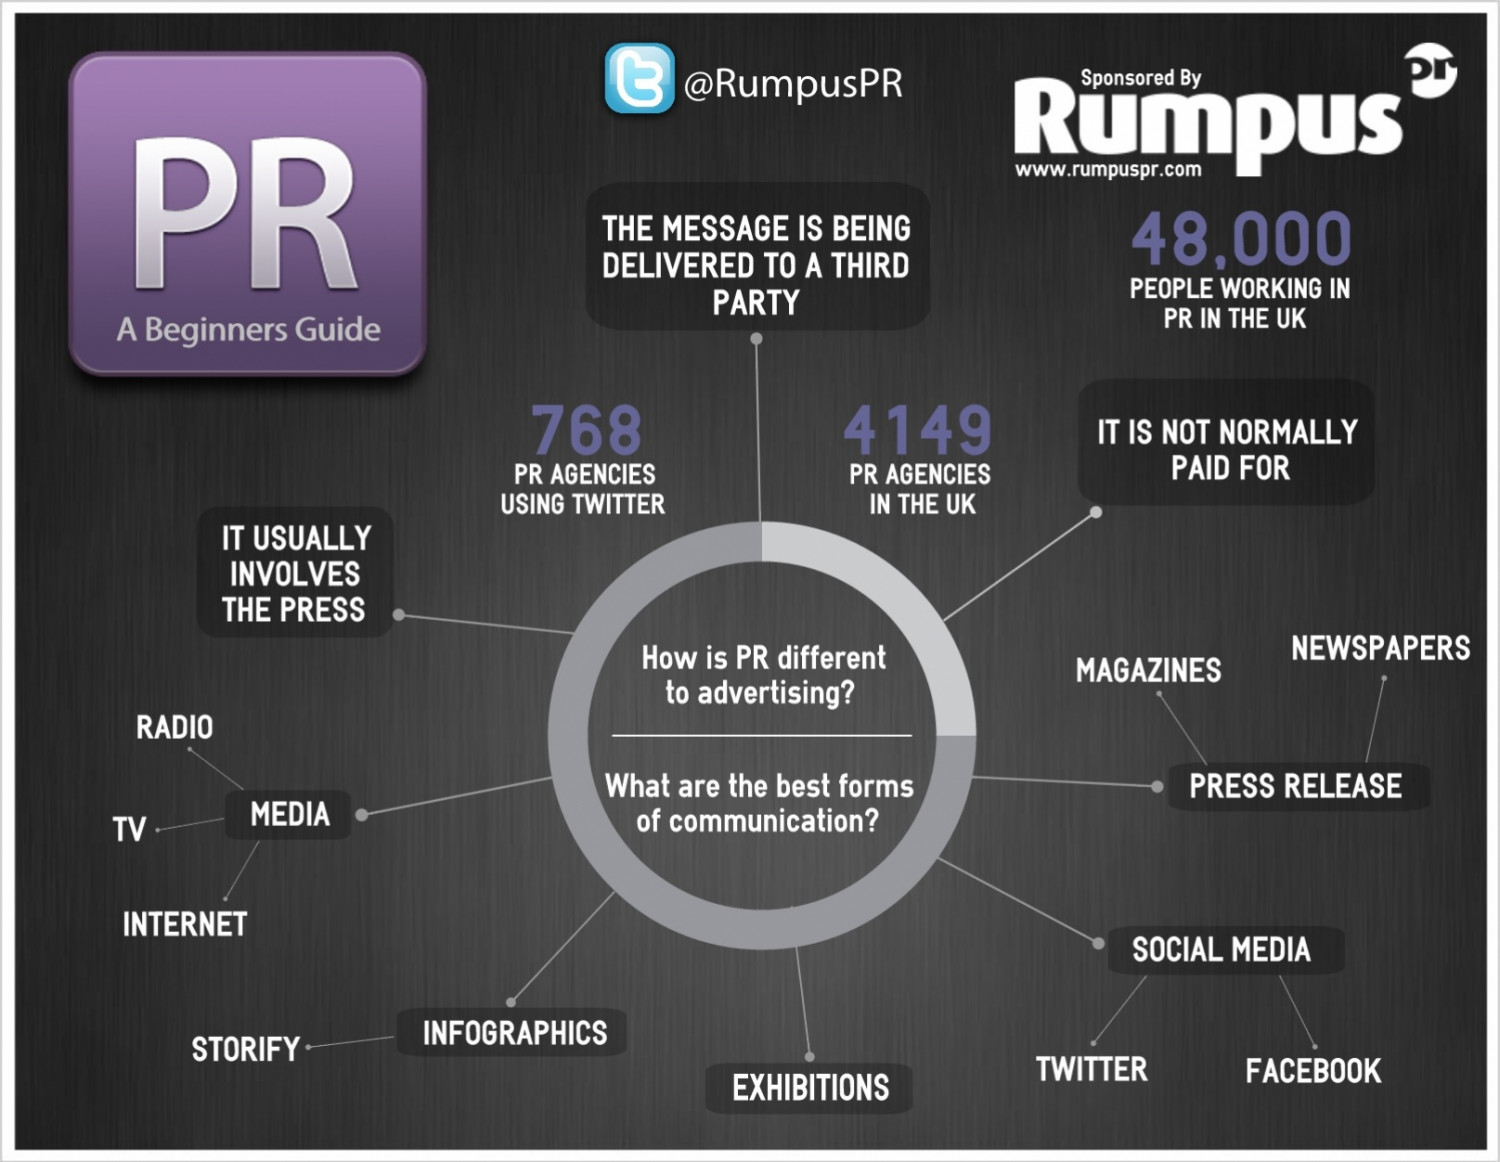 PR: A Beginners Guide Infographic